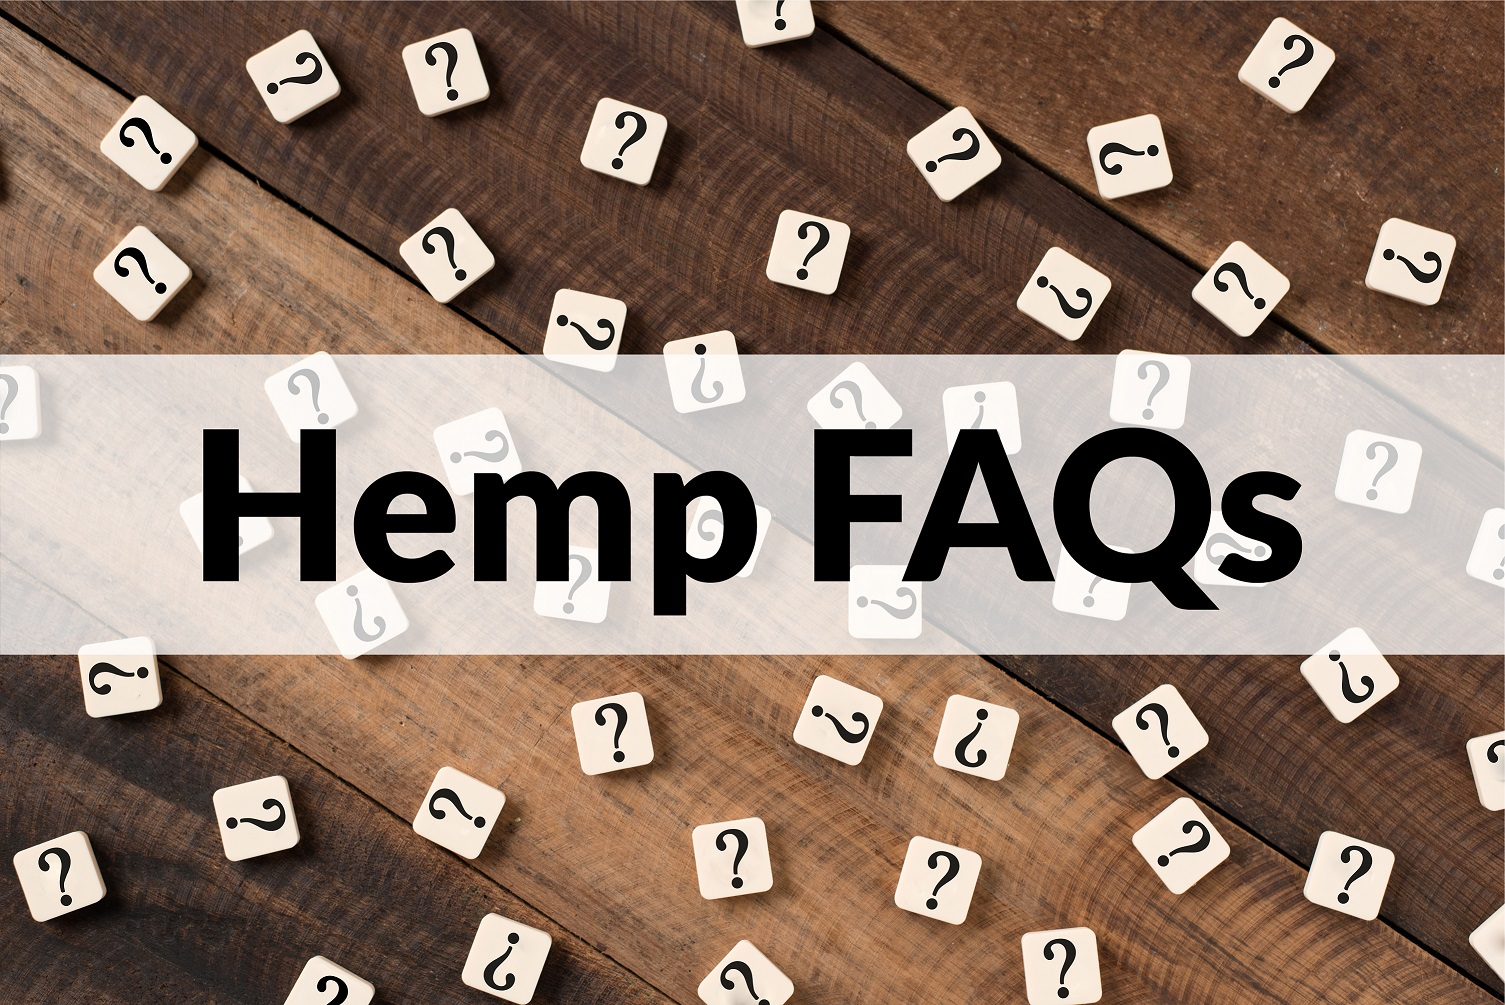 Hemp FAQs header with question mark tiles in the background